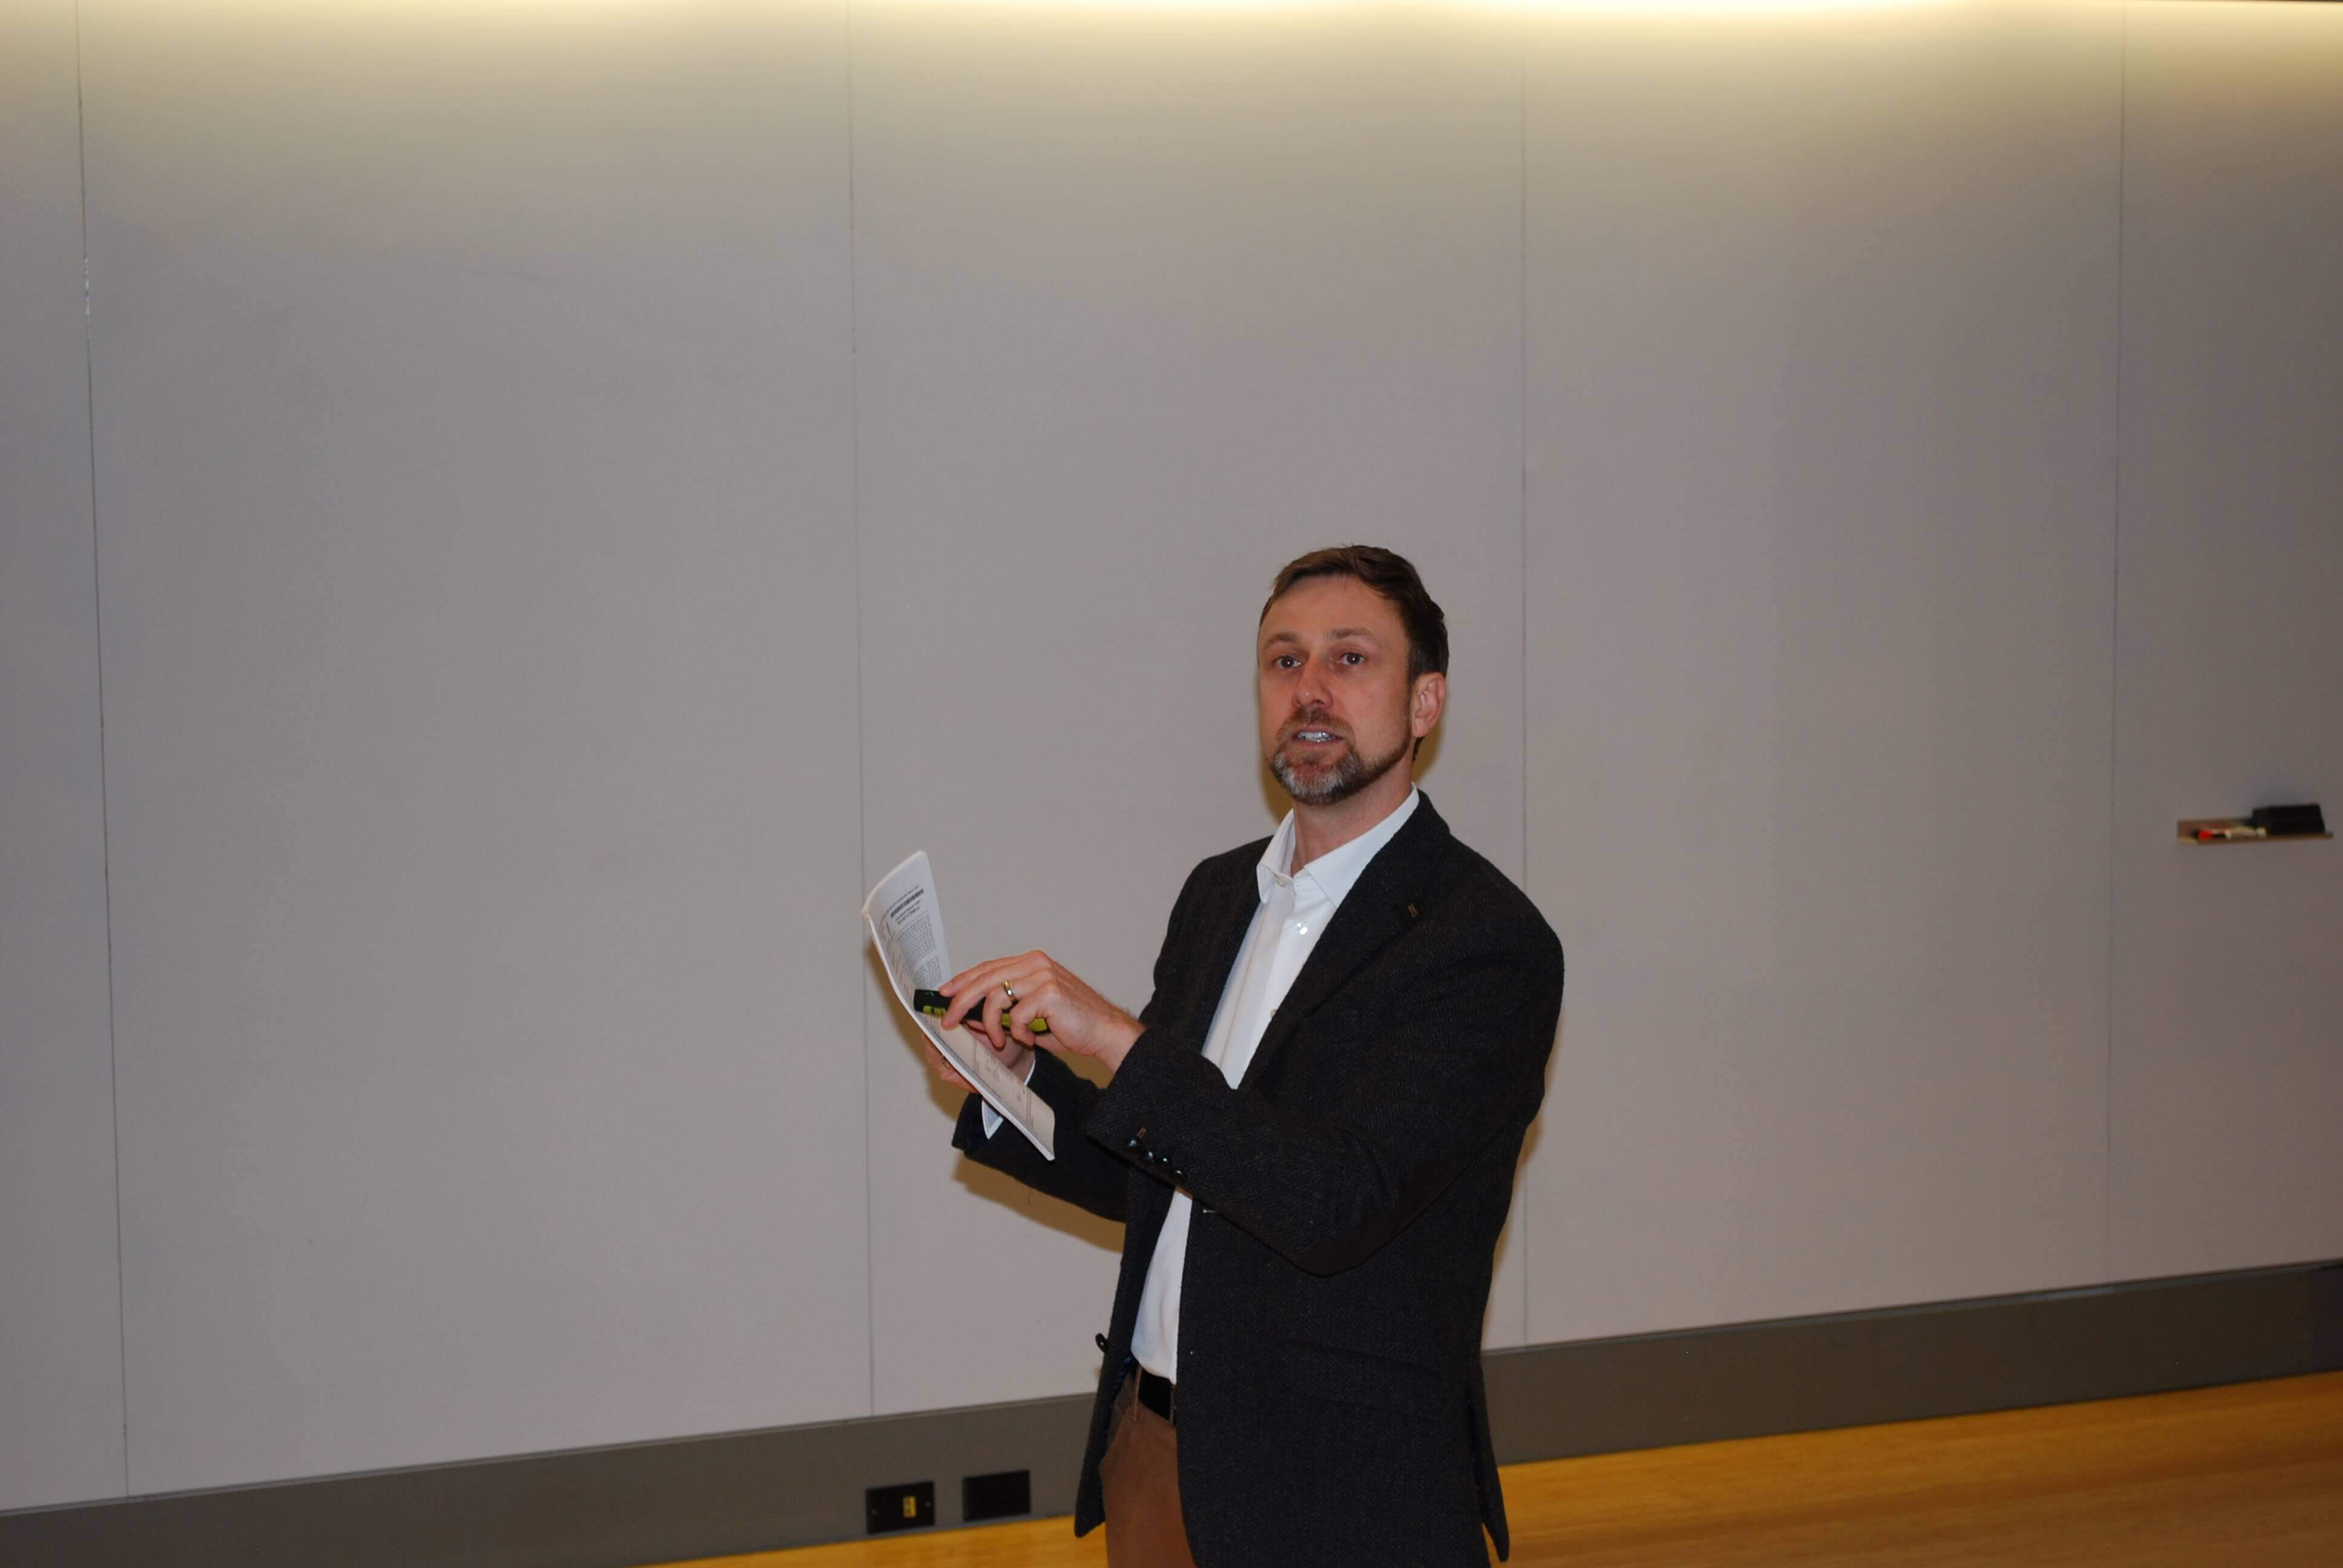 TQT Hosts Lunch and Learn: A Case Study in Patent Development